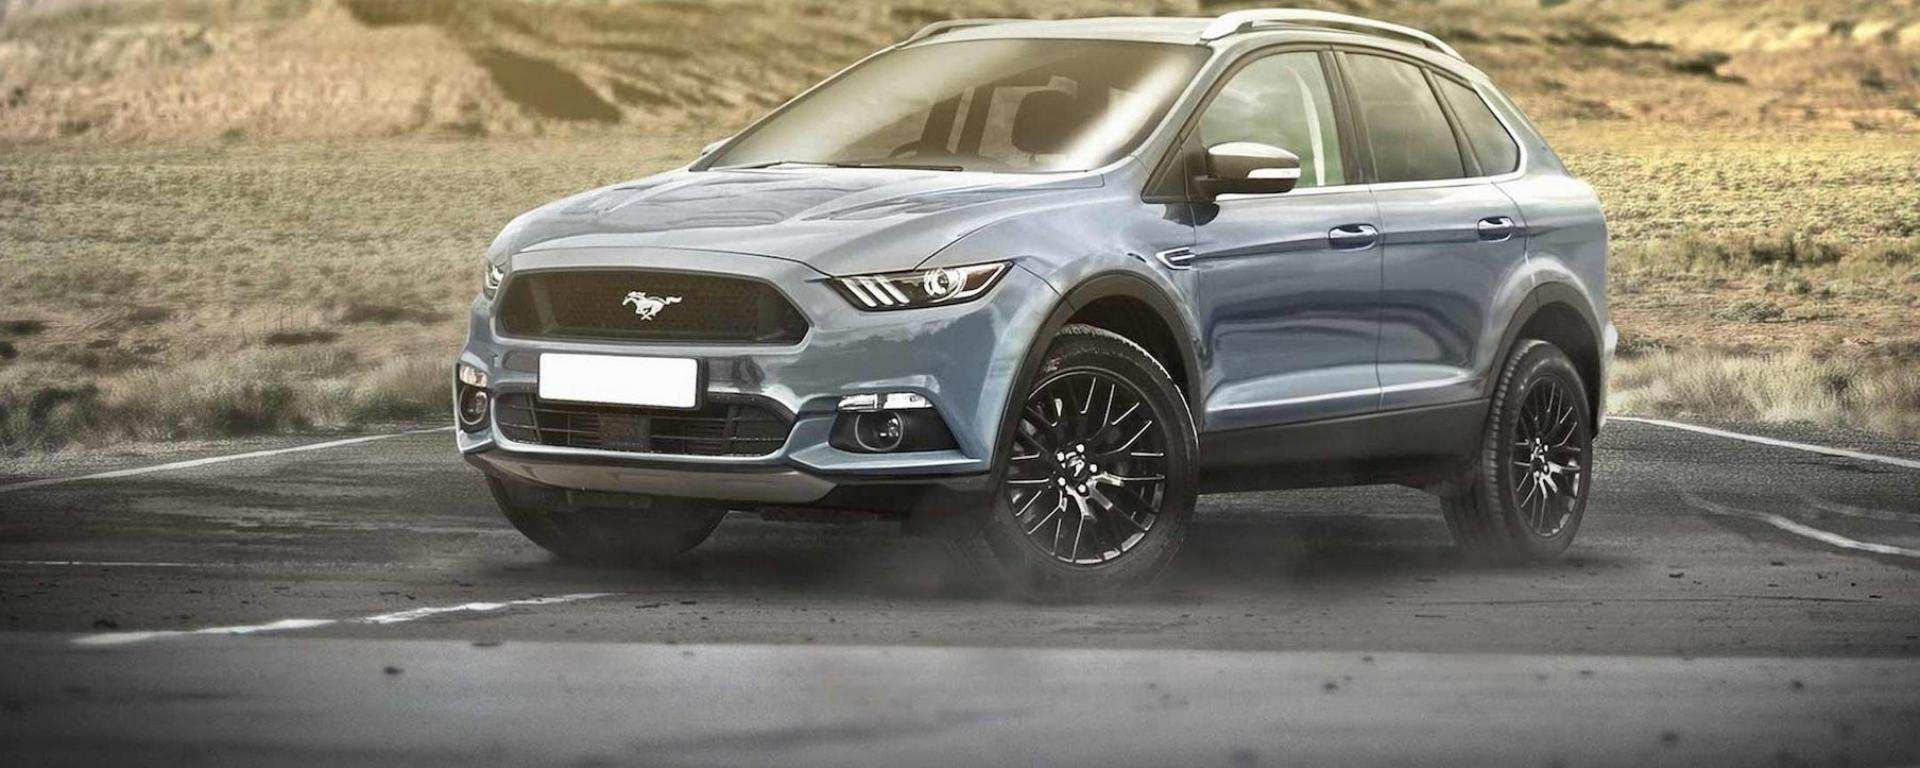 43 All New Ford Crossover 2020 Pictures